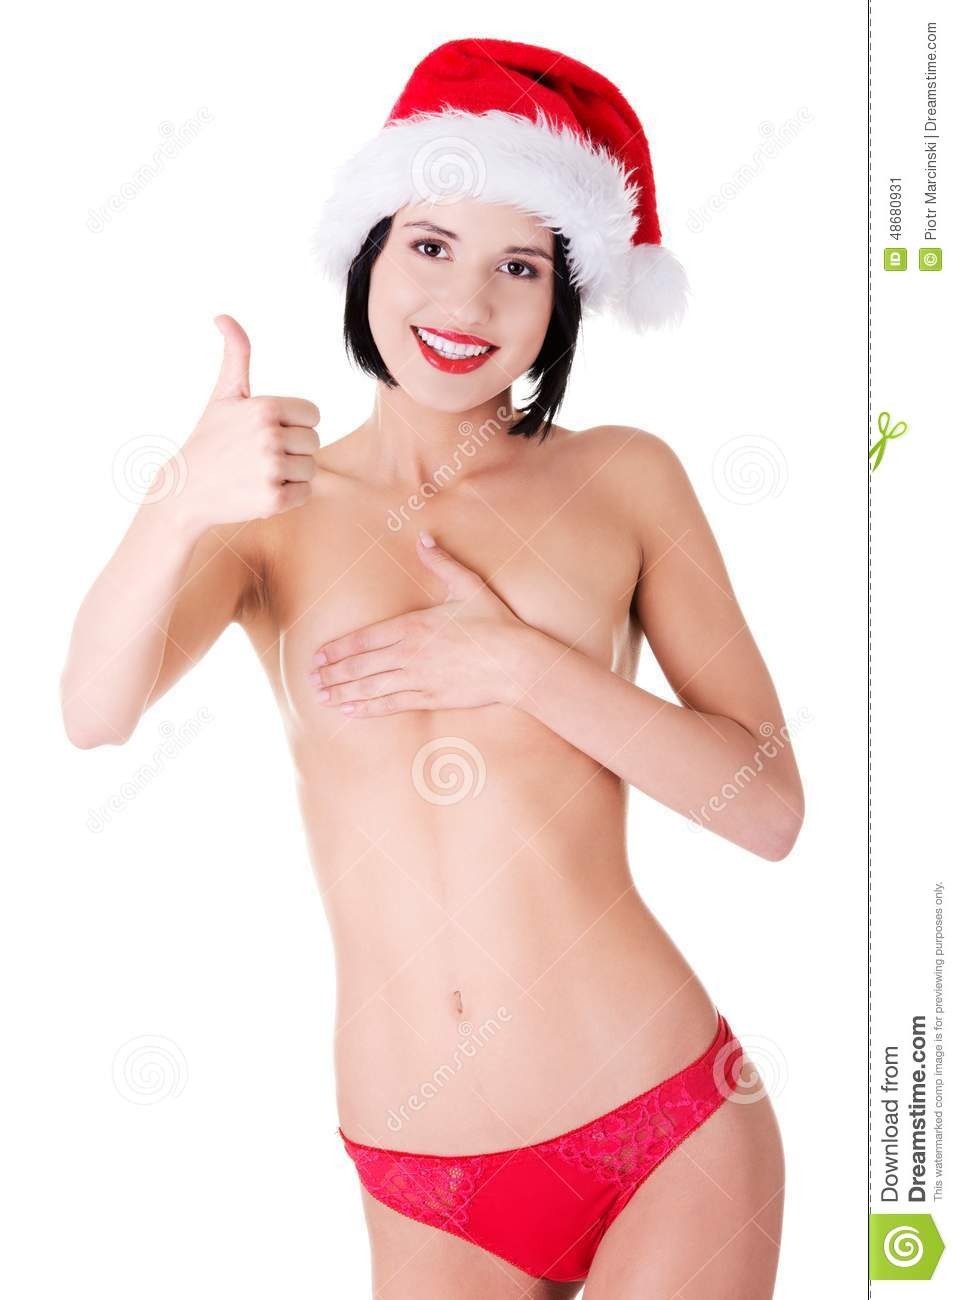 Thumbnail picture of naked woman